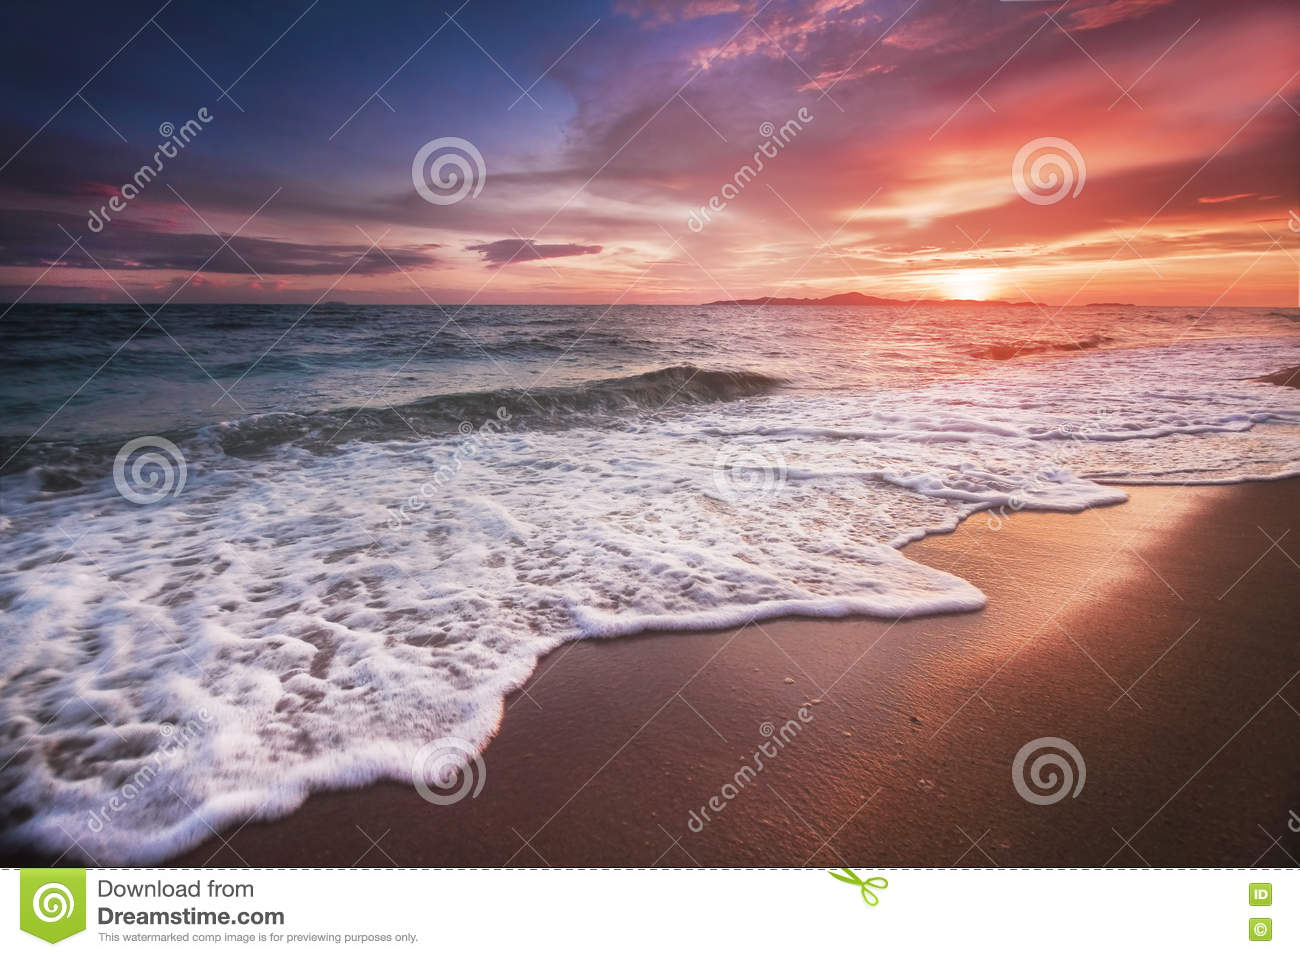 Incredibly beautiful sunset on the beach in Thailand. Sun, sky, sea, waves and sand. A holiday by the sea